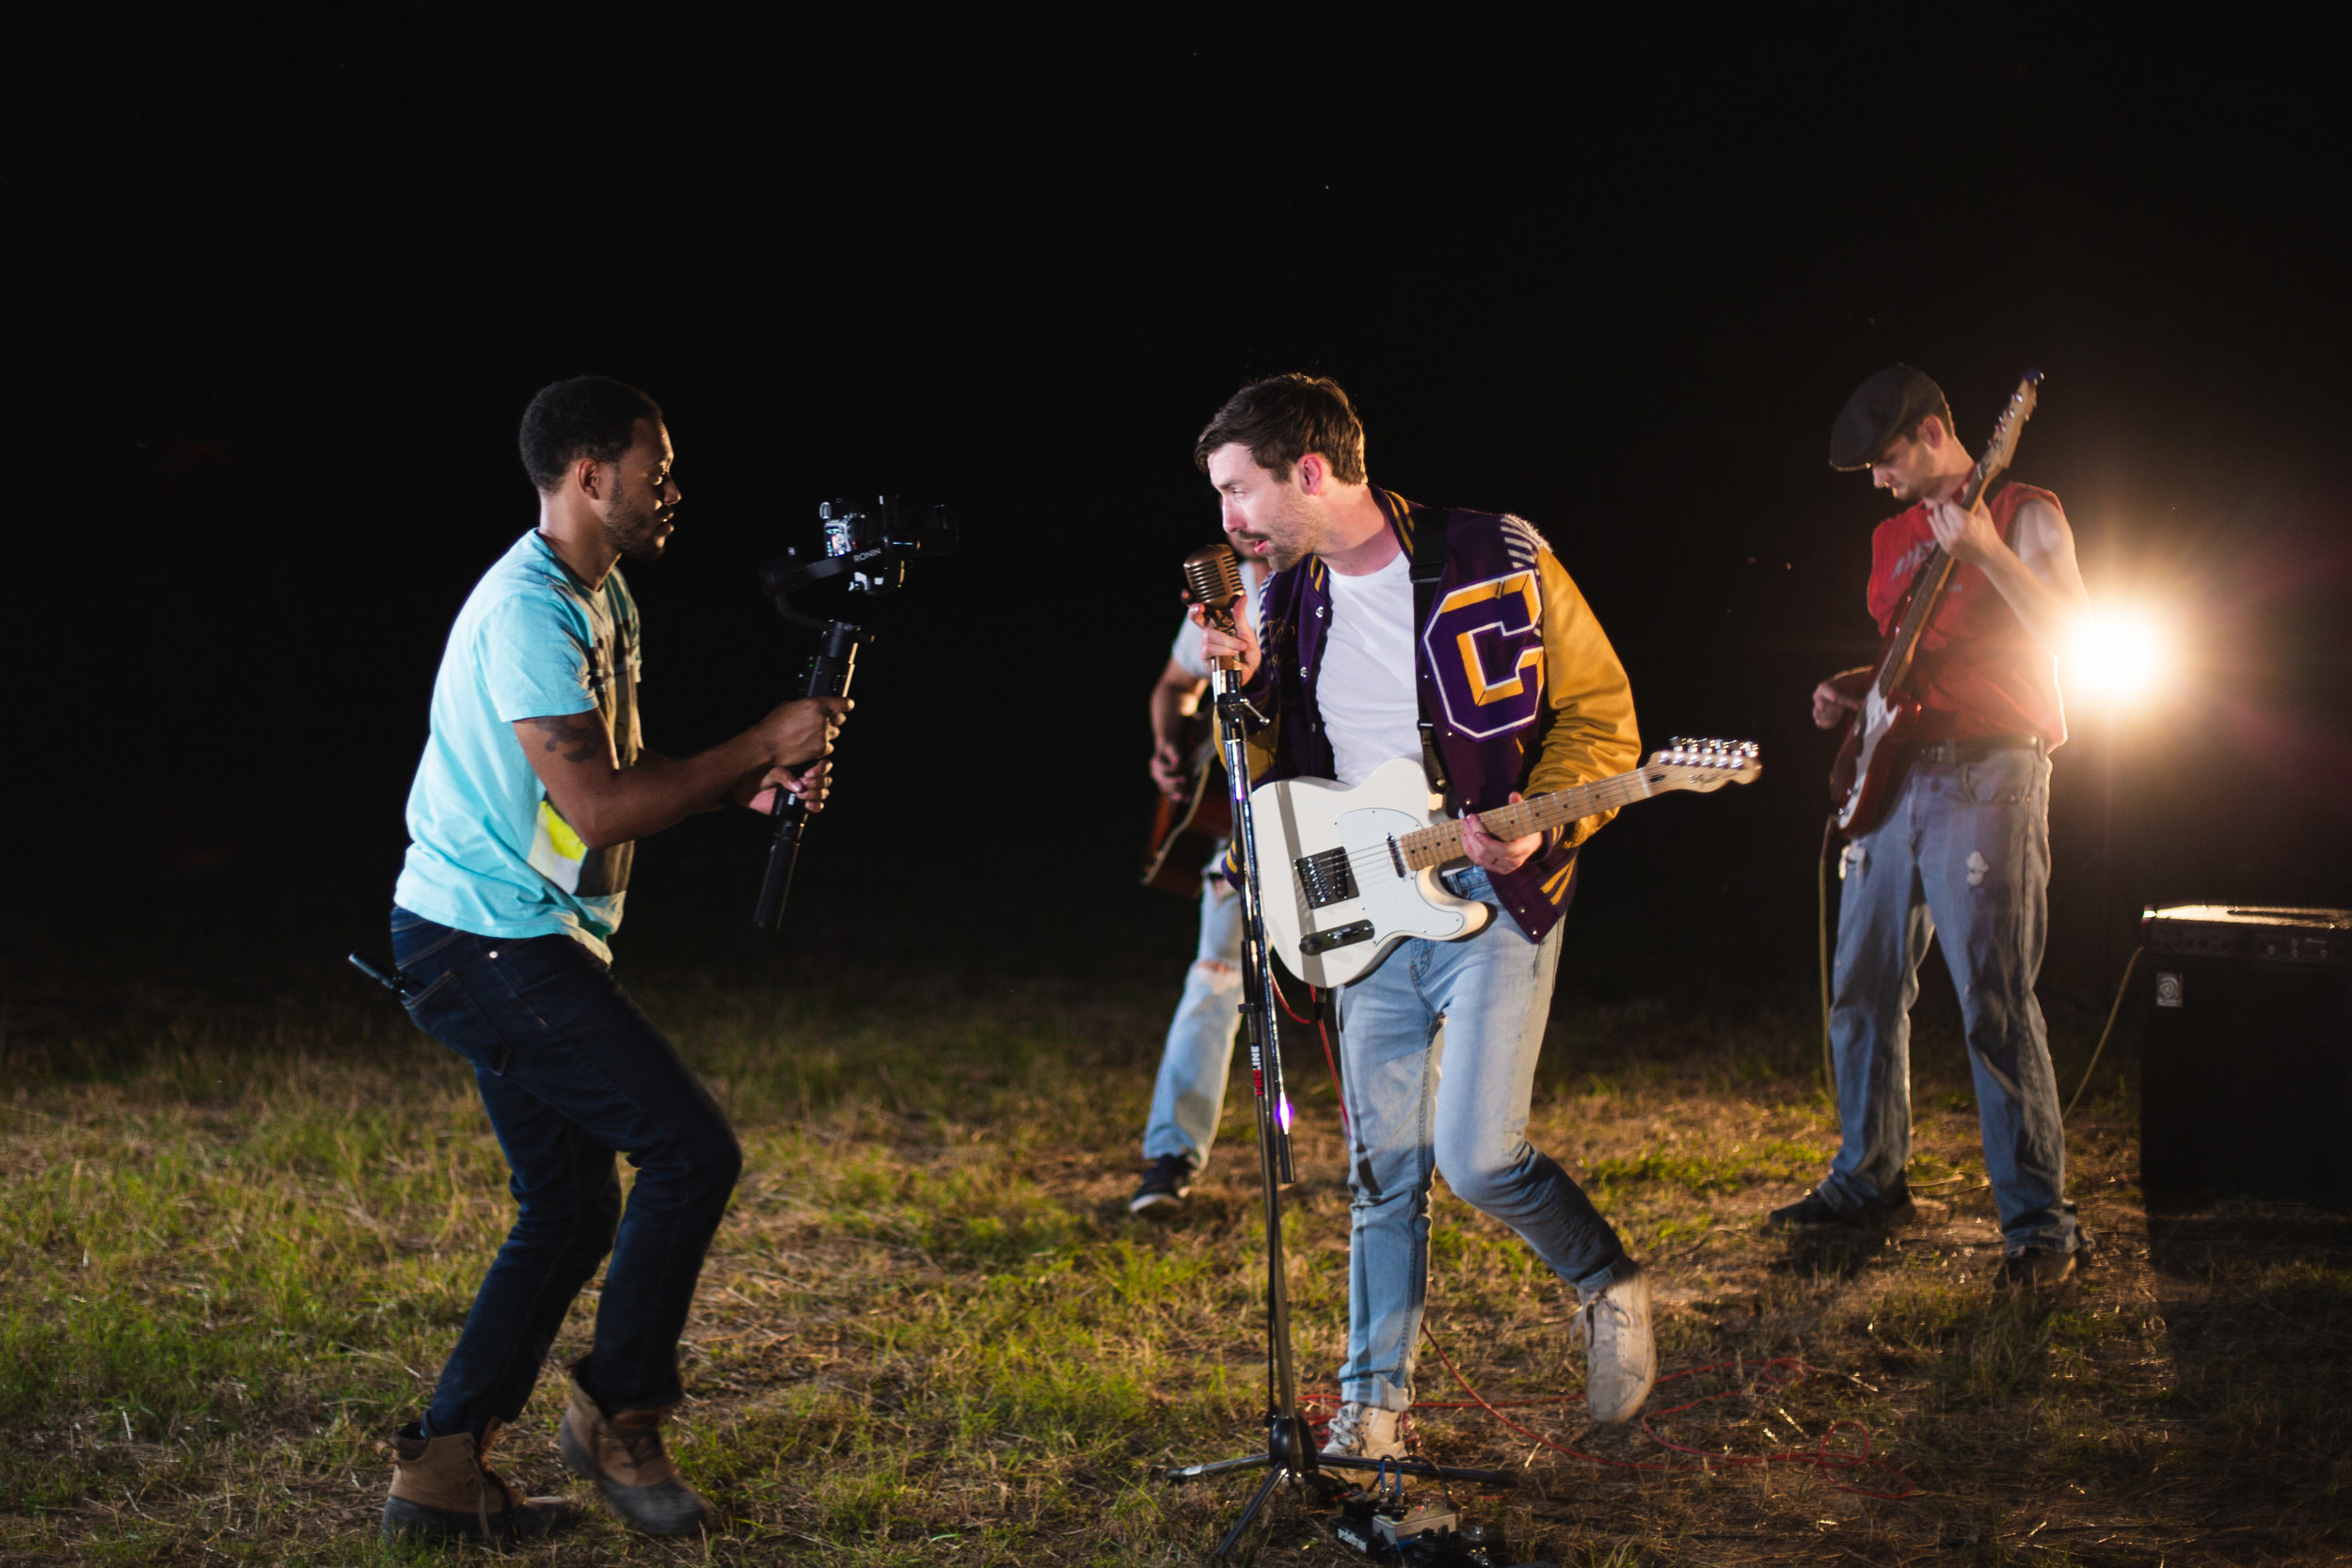 FootShooter music video shoot. Photo cred: @aleksworks